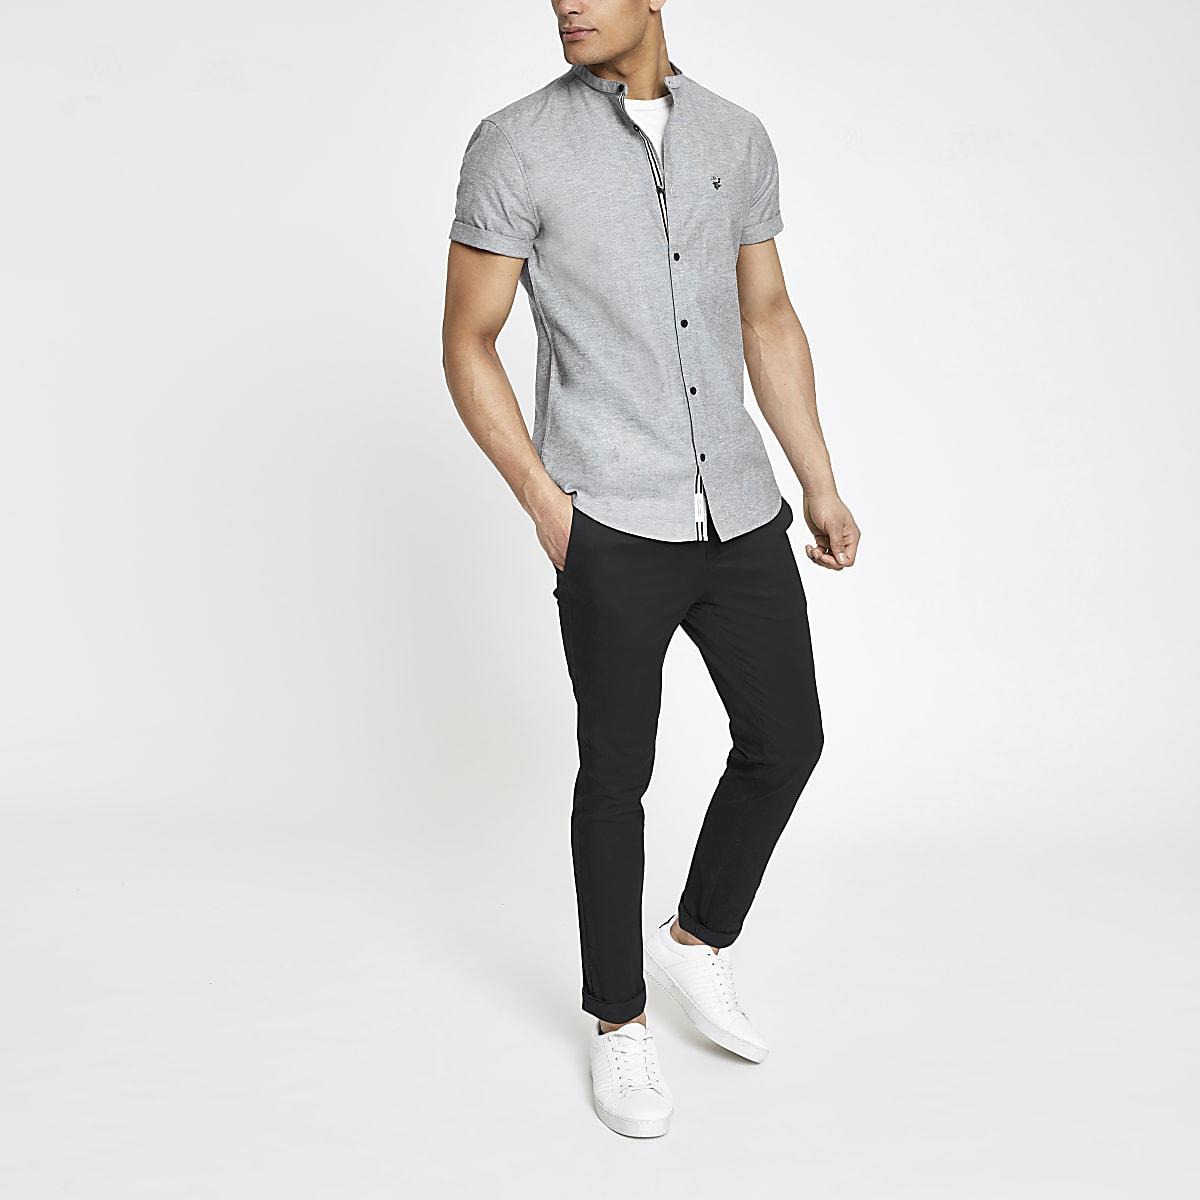 Grey Oxford grandad muscle fit shirt